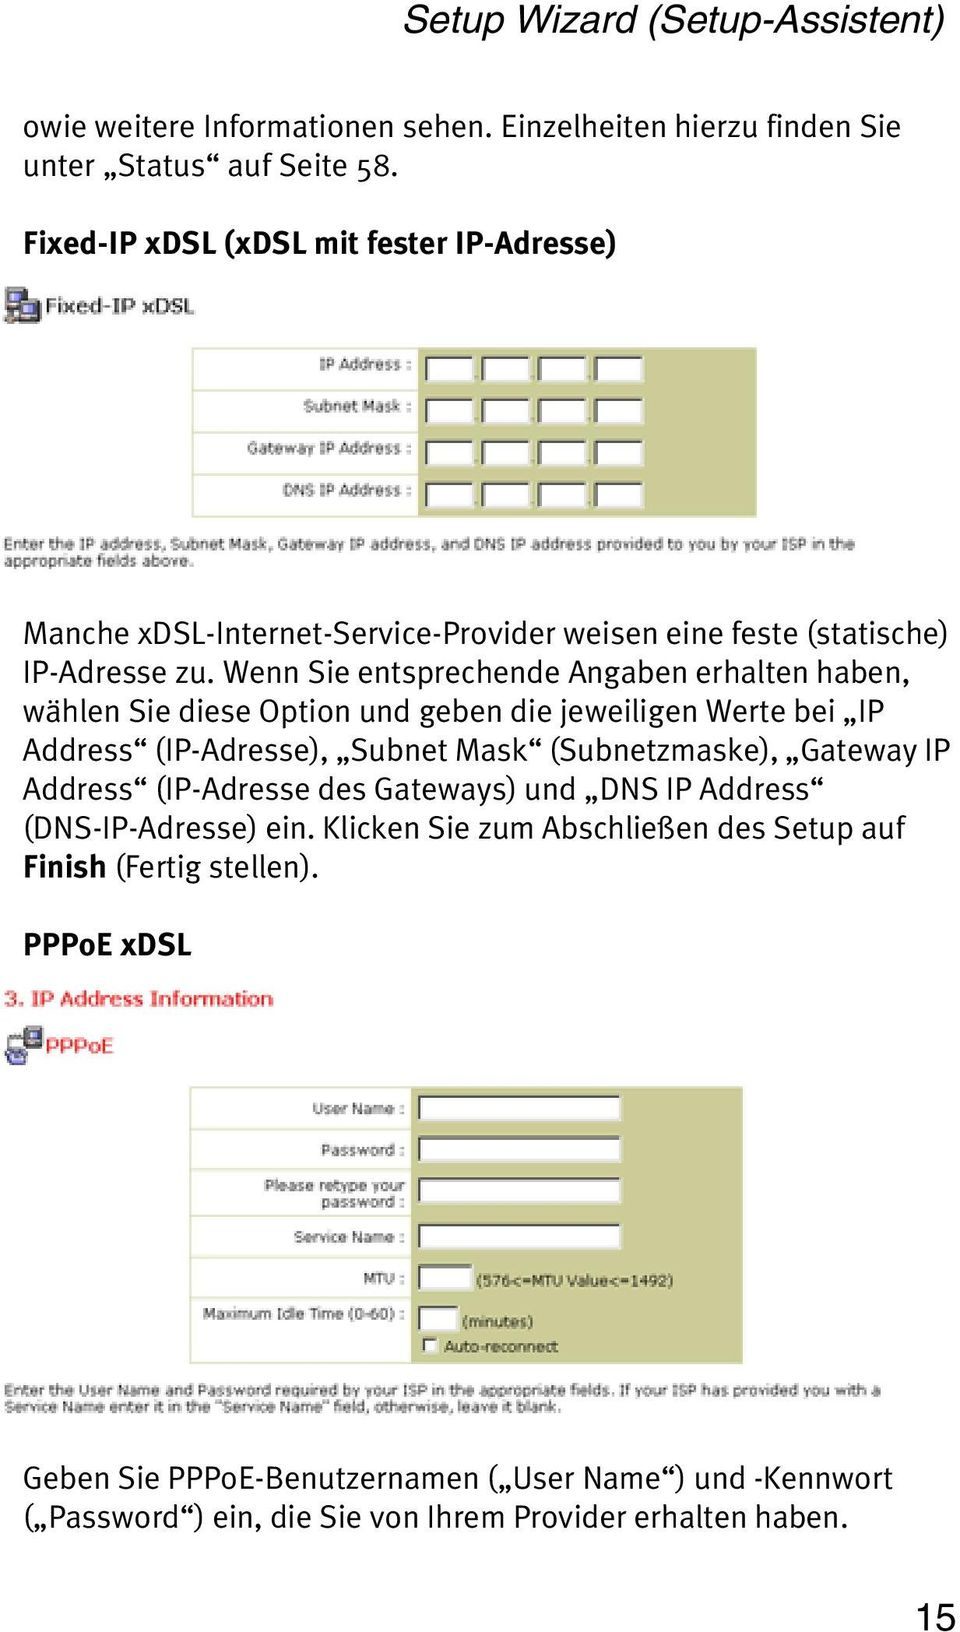 Wenn Sie entsprechende Angaben erhalten haben, wählen Sie diese Option und geben die jeweiligen Werte bei IP Address (IP-Adresse), Subnet Mask (Subnetzmaske), Gateway IP